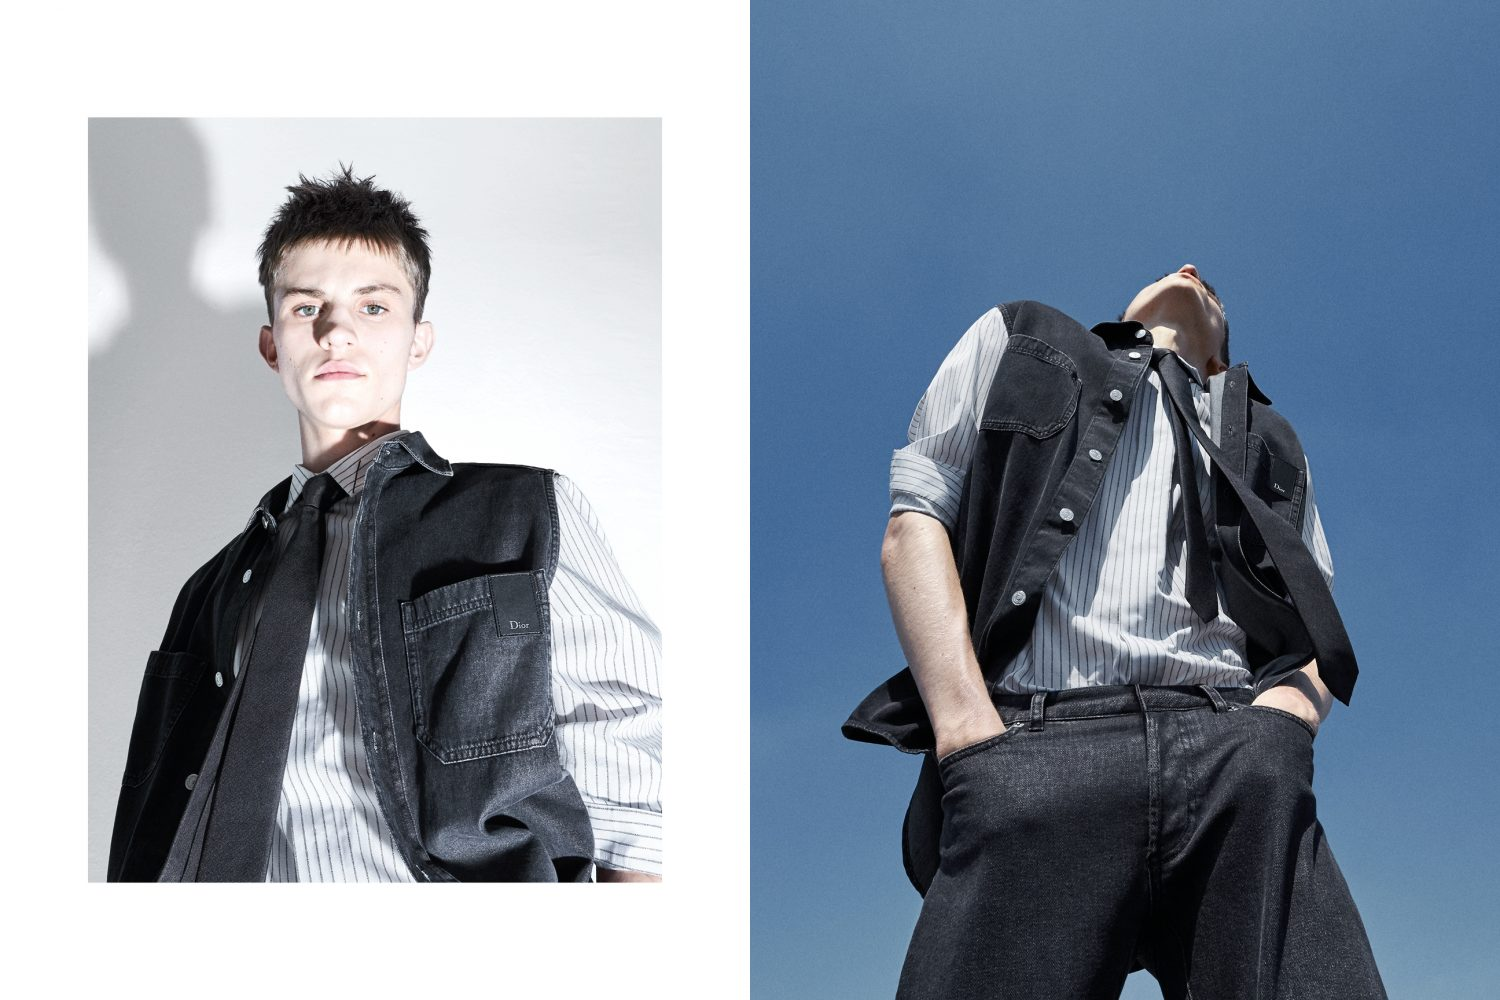 DIOR-DENIM-STYLISME-BY-MAURICIO-NARDI-PICTURE-BY-ALESSIO-BOLZONI-FOR-DIOR-HOMME_8